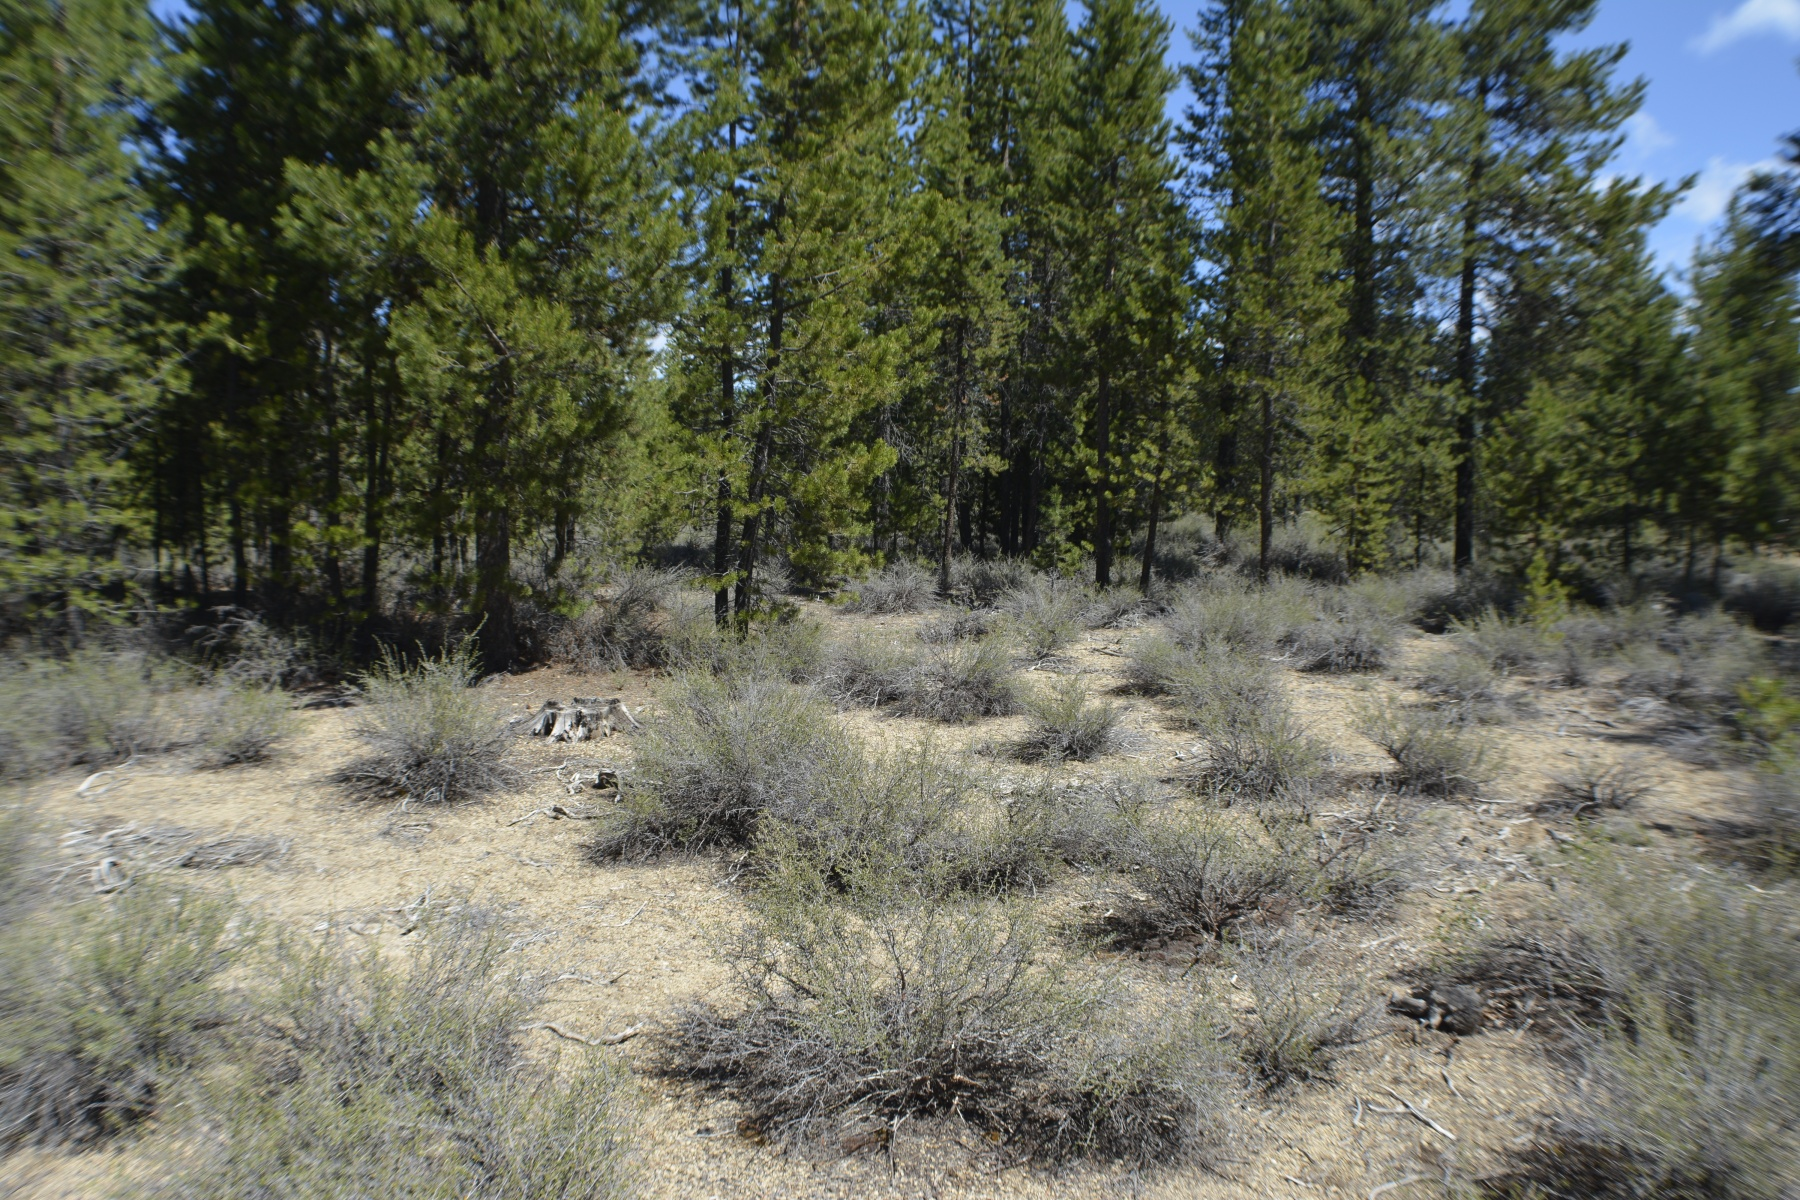 Land for Sale at 1600 Gracies Road, GILCHRIST 1600 Gracies Rd Gilchrist, Oregon, 97737 United States